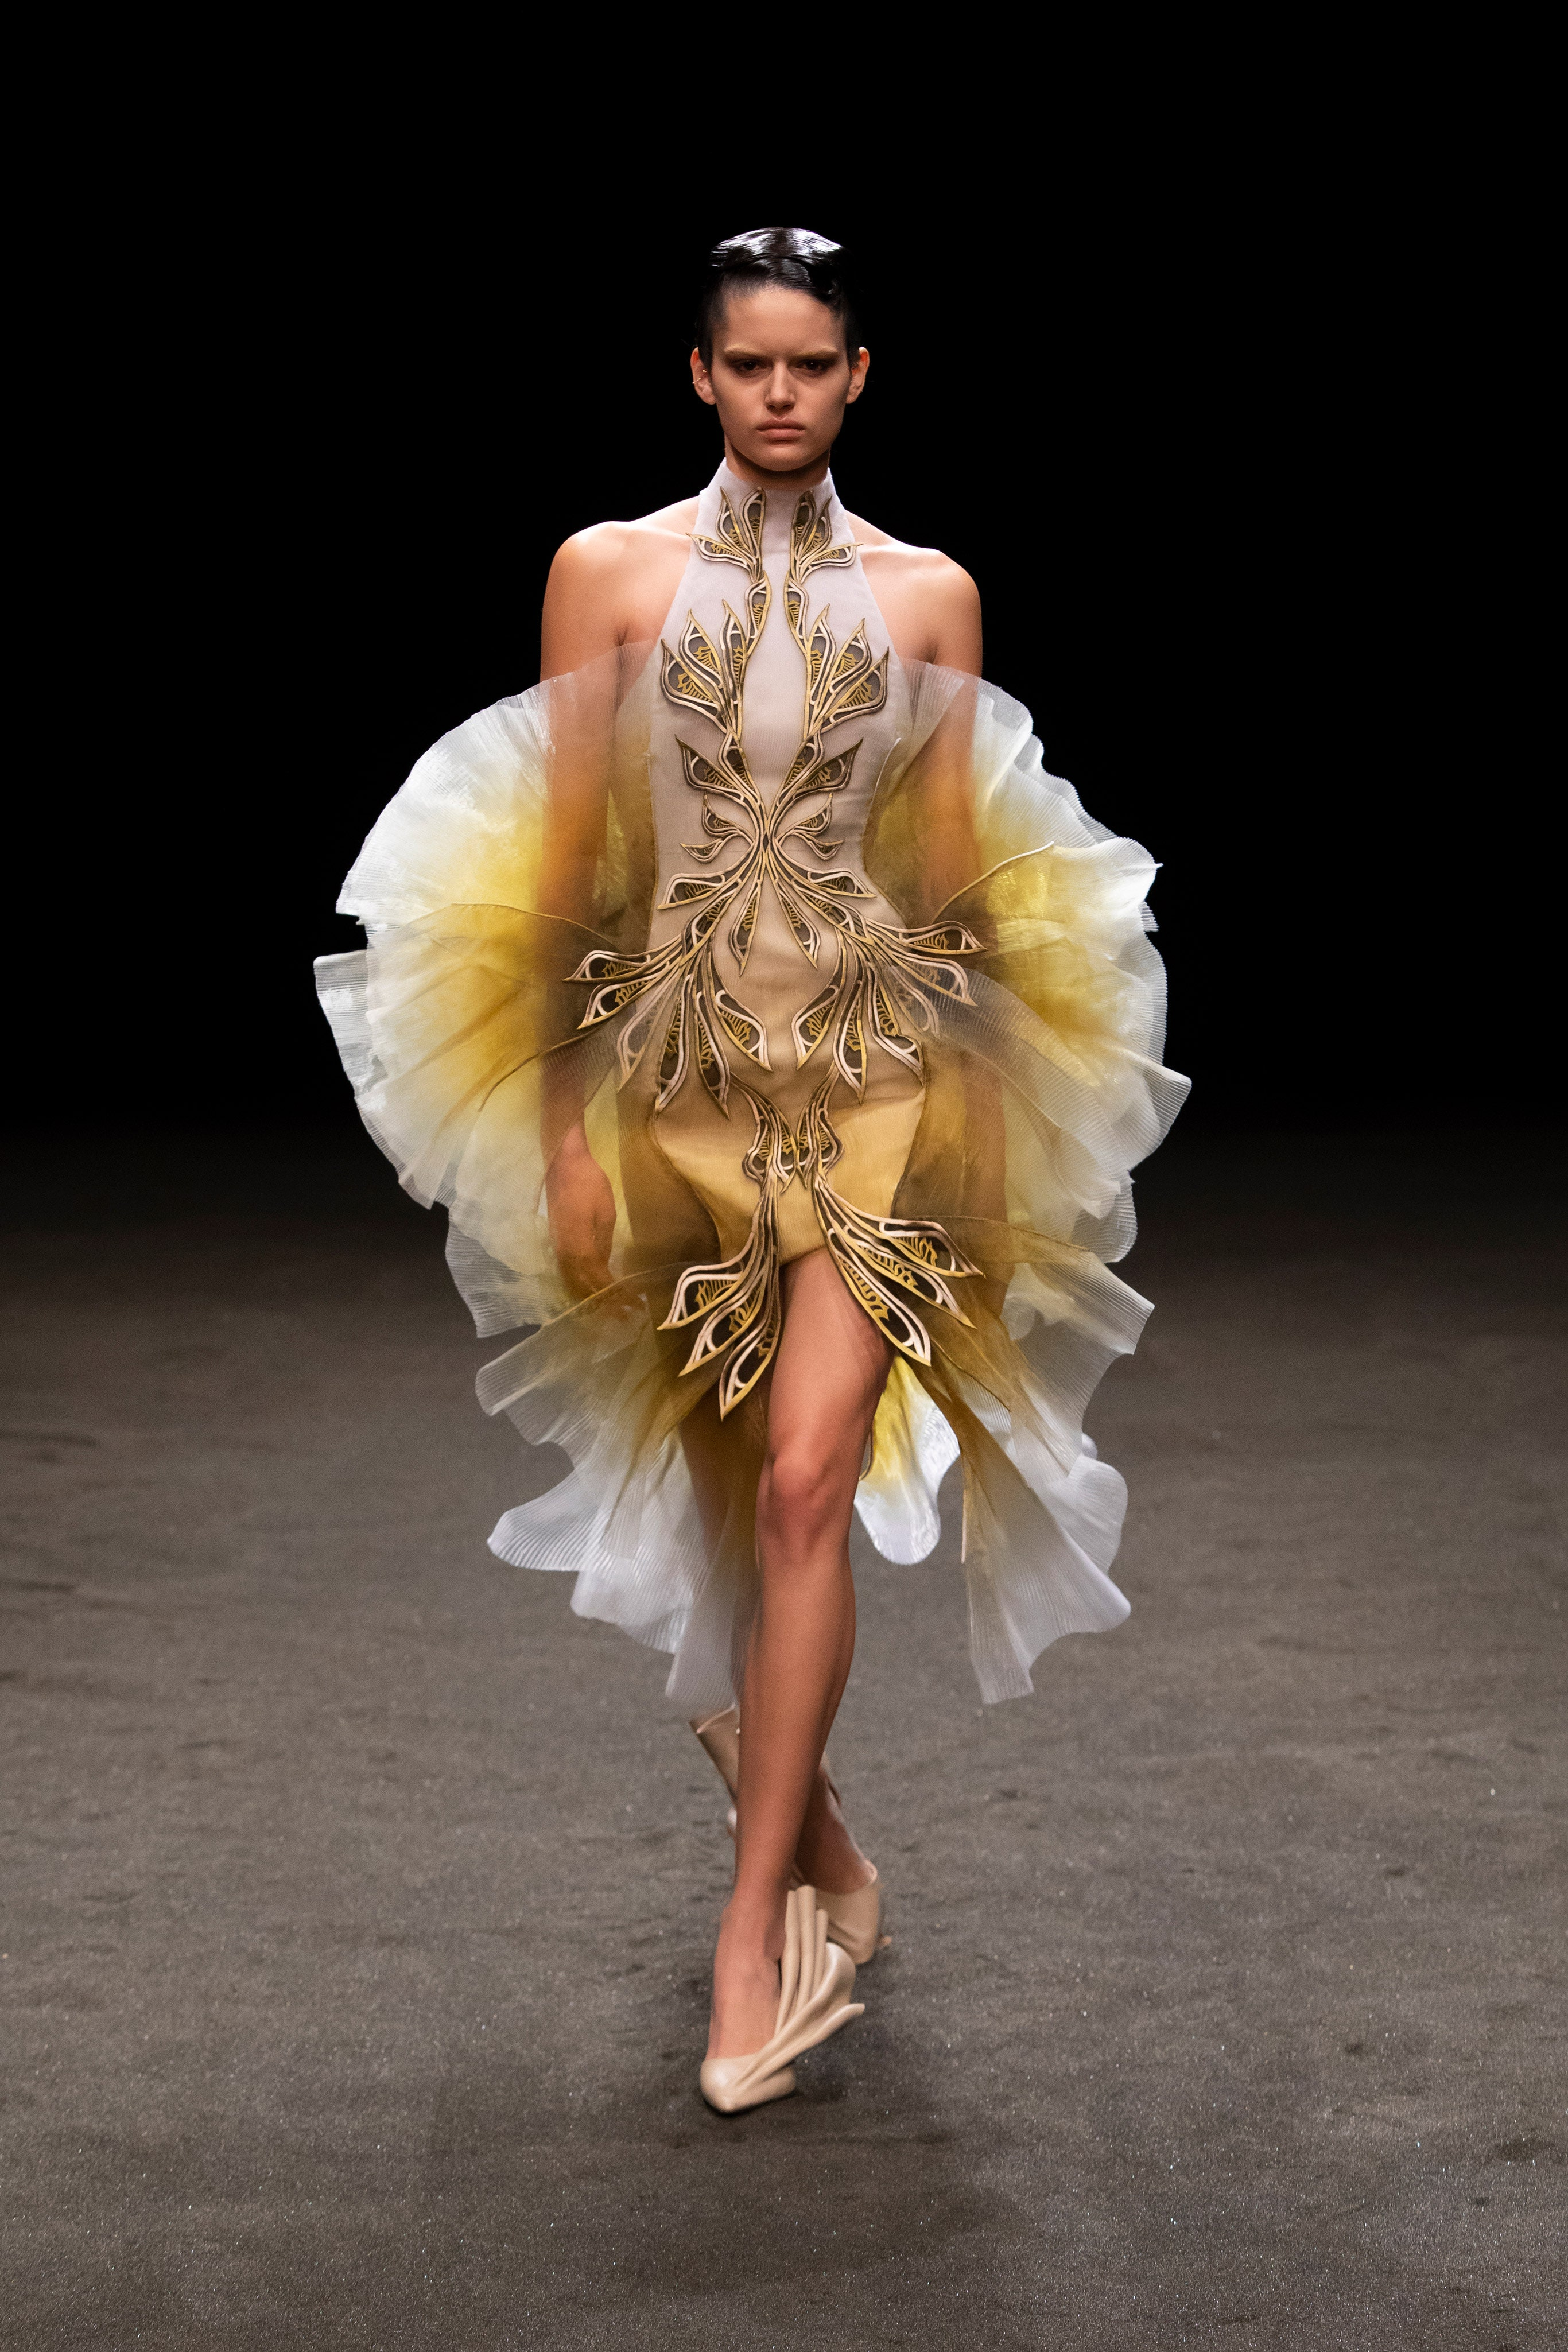 Iris van Herpen Spring 2021 Couture. A lady wearing a beige and yellow dress with a pattern at the center of the dress and ruffles.